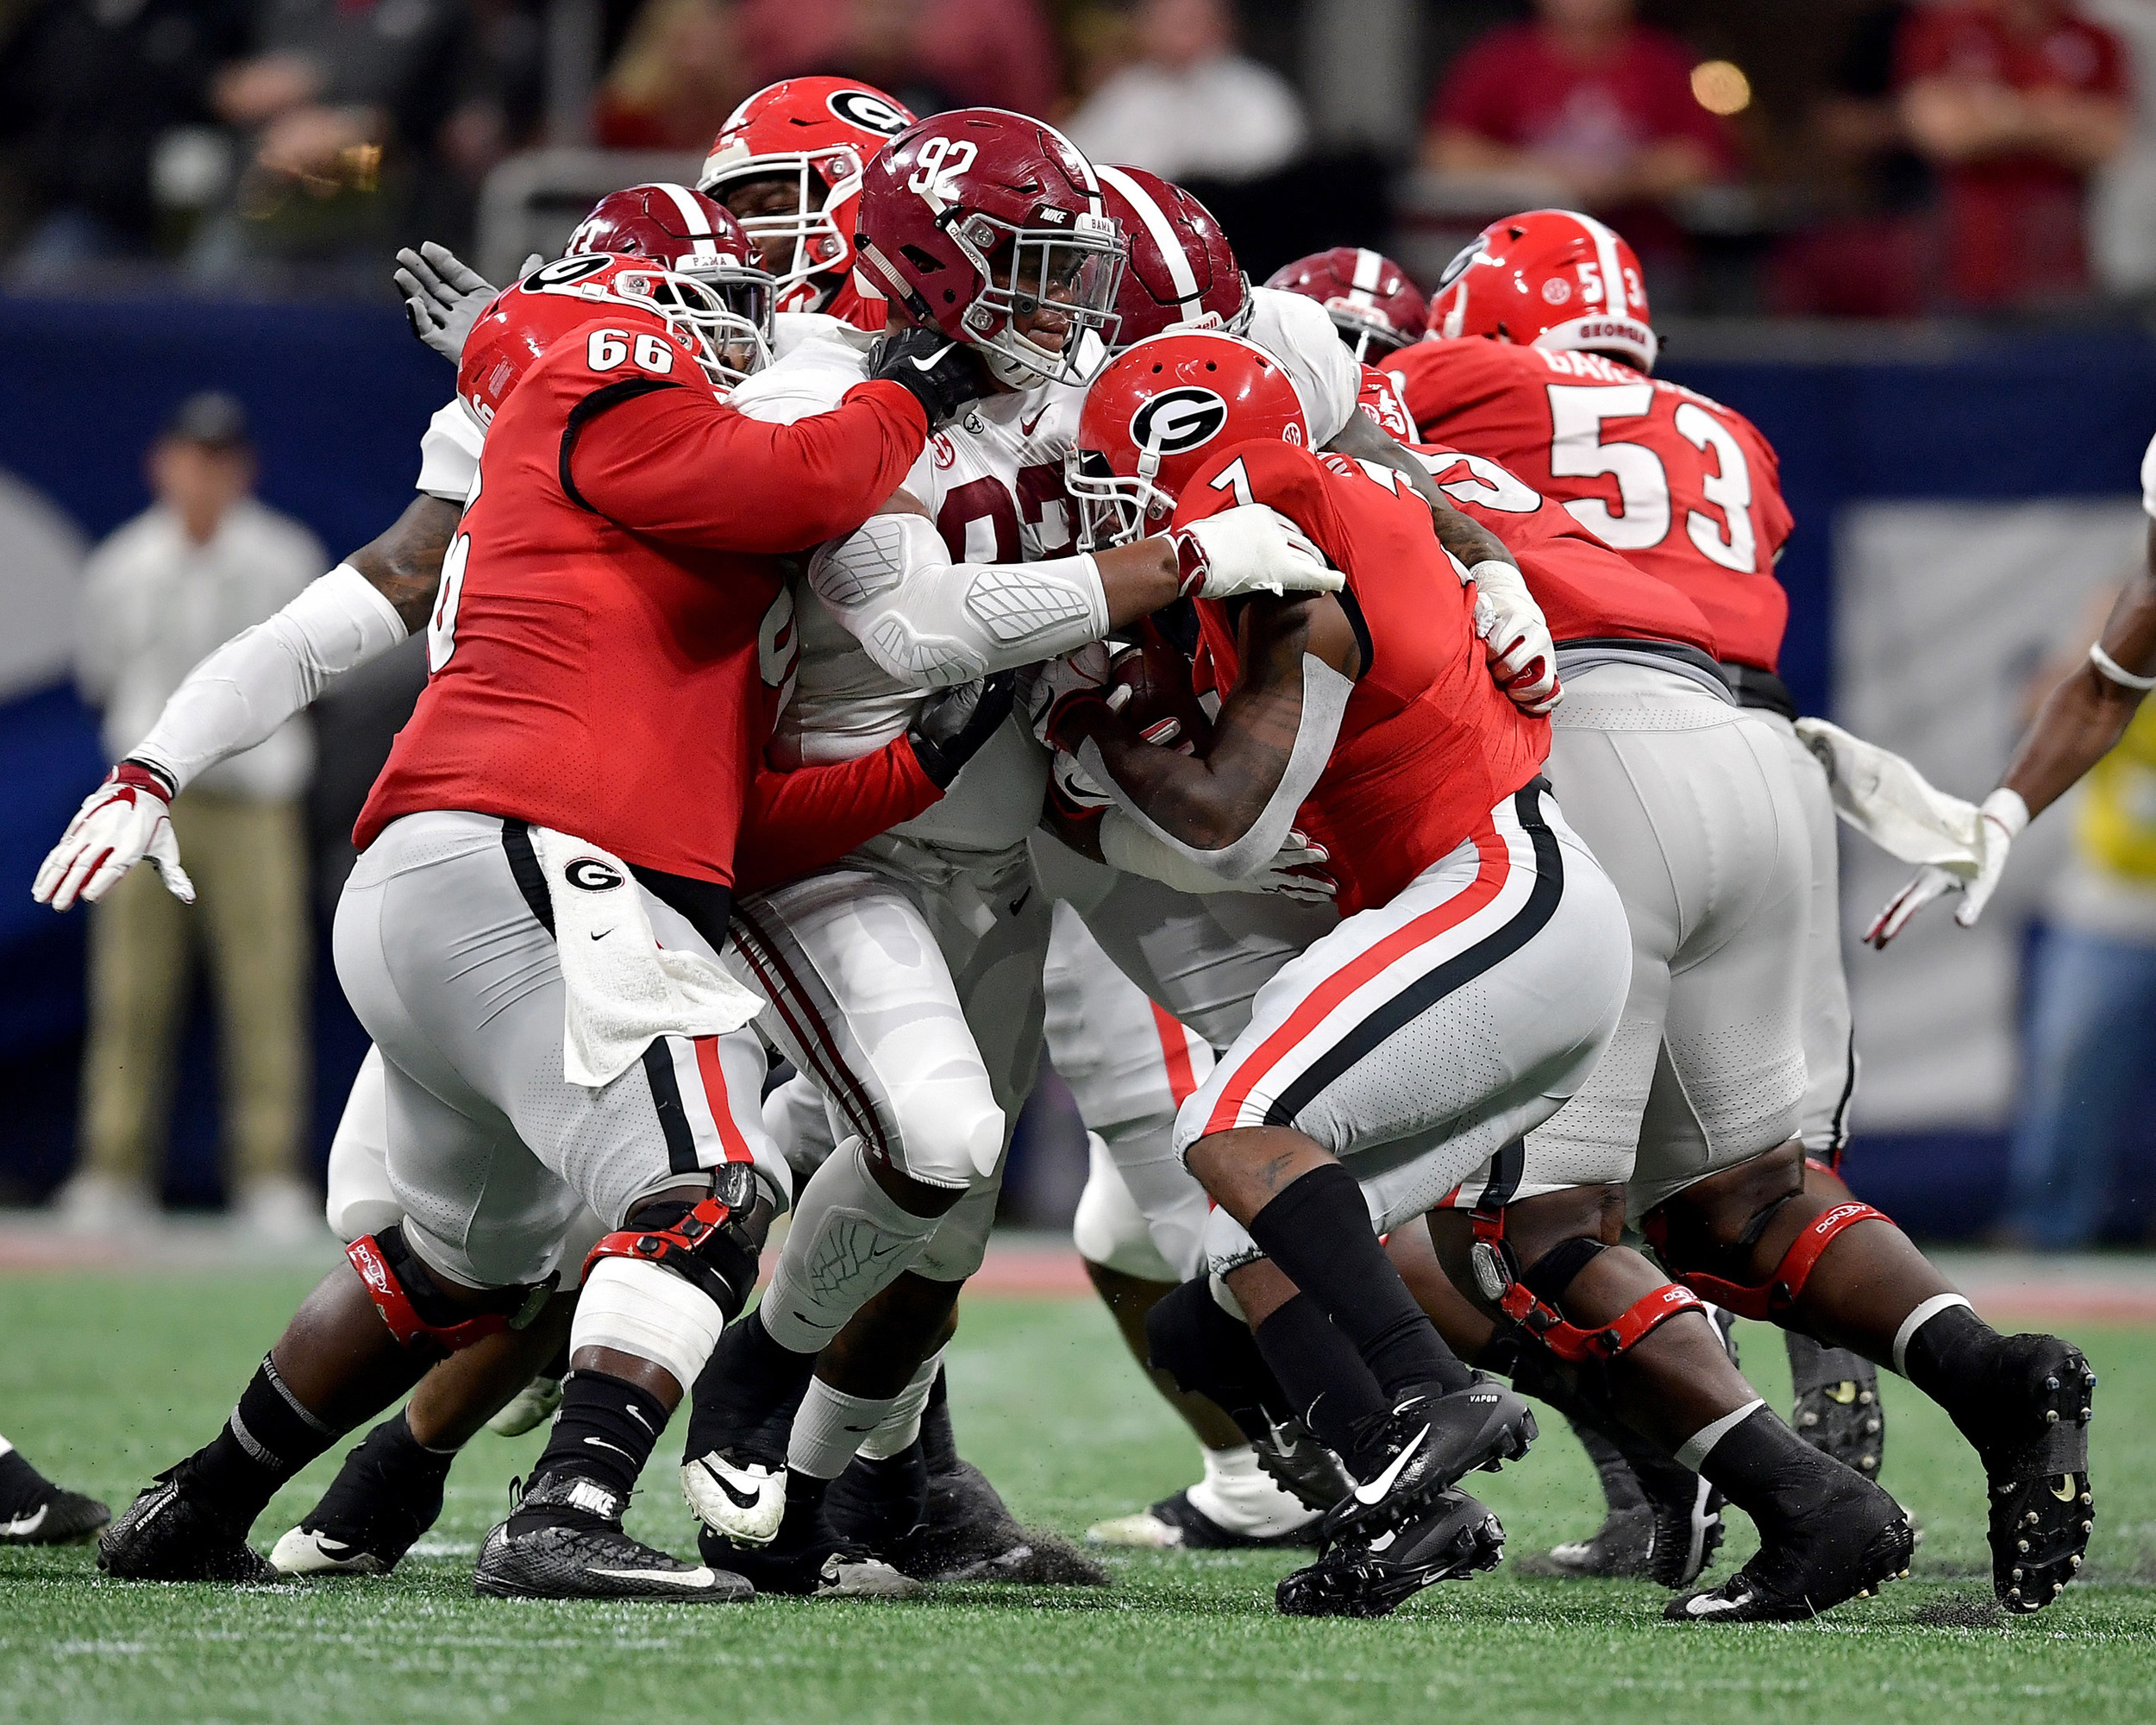 From the first half of the 2018 SEC Championship football game, featuring the Georgia Bulldogs and the Alabama Crimson Tide, at Mercedes-Benz Stadium in Atlanta, Ga., on Dec. 1, 2018. Alabama wins 35-28. (Photo by Lee Walls)